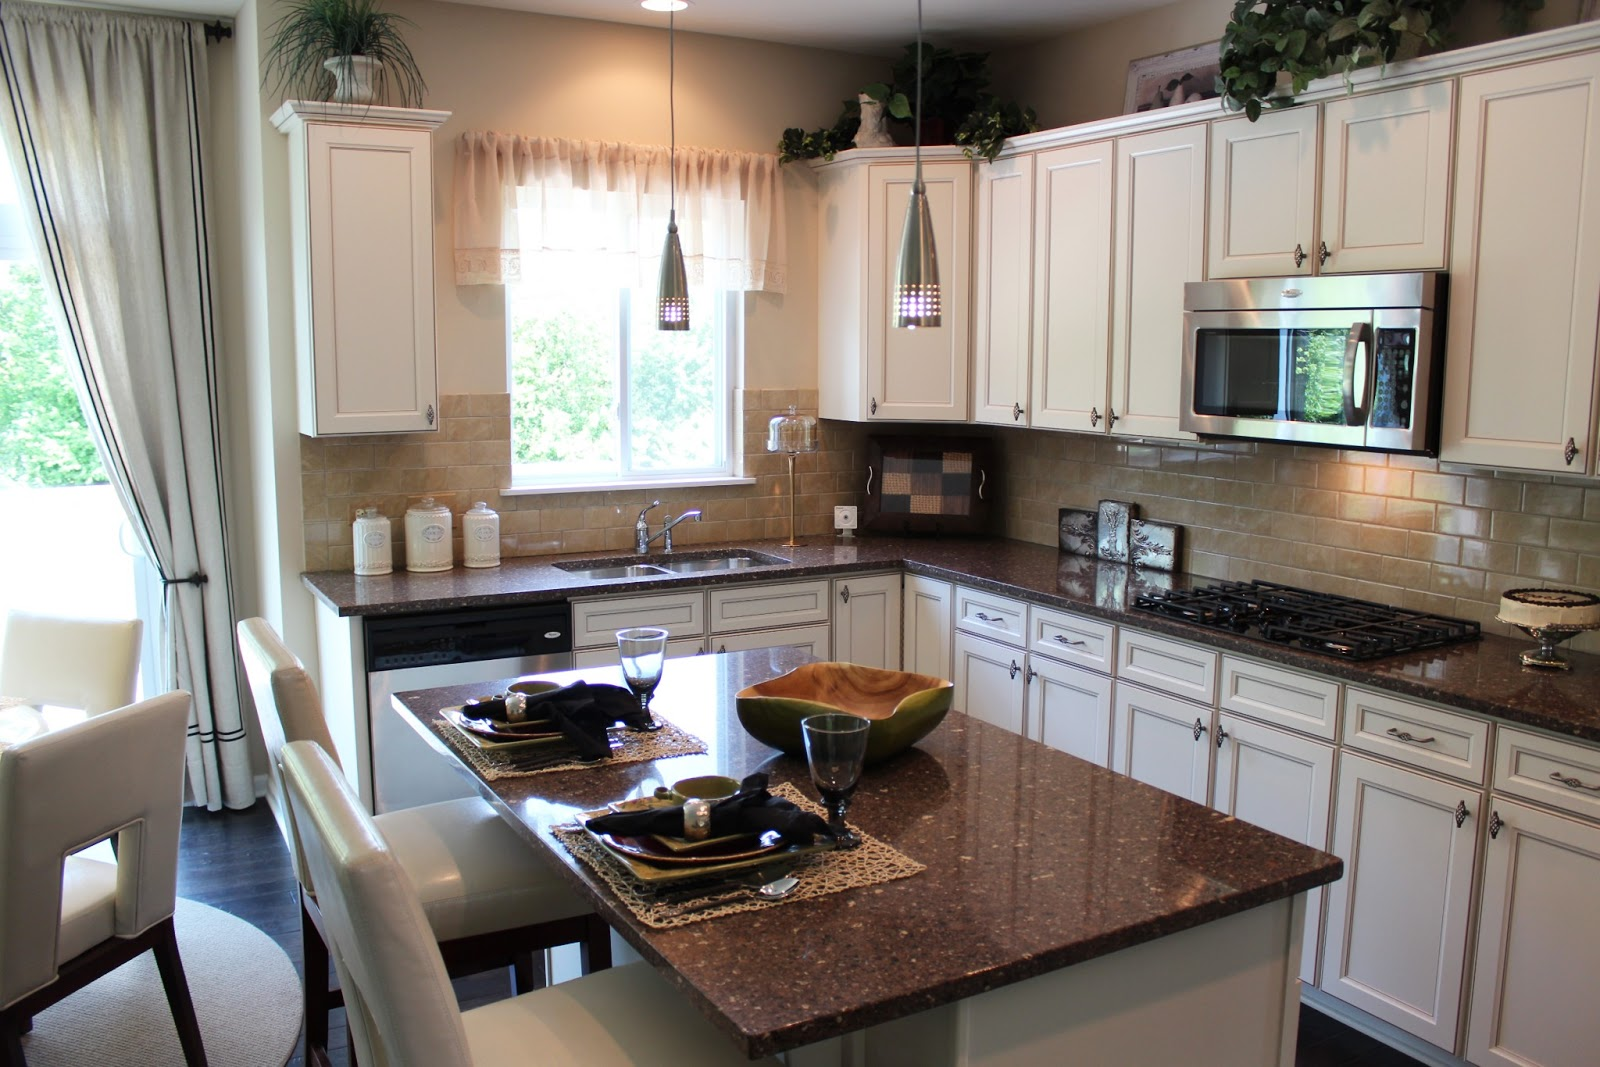 Kitchen Renovation For Your Home